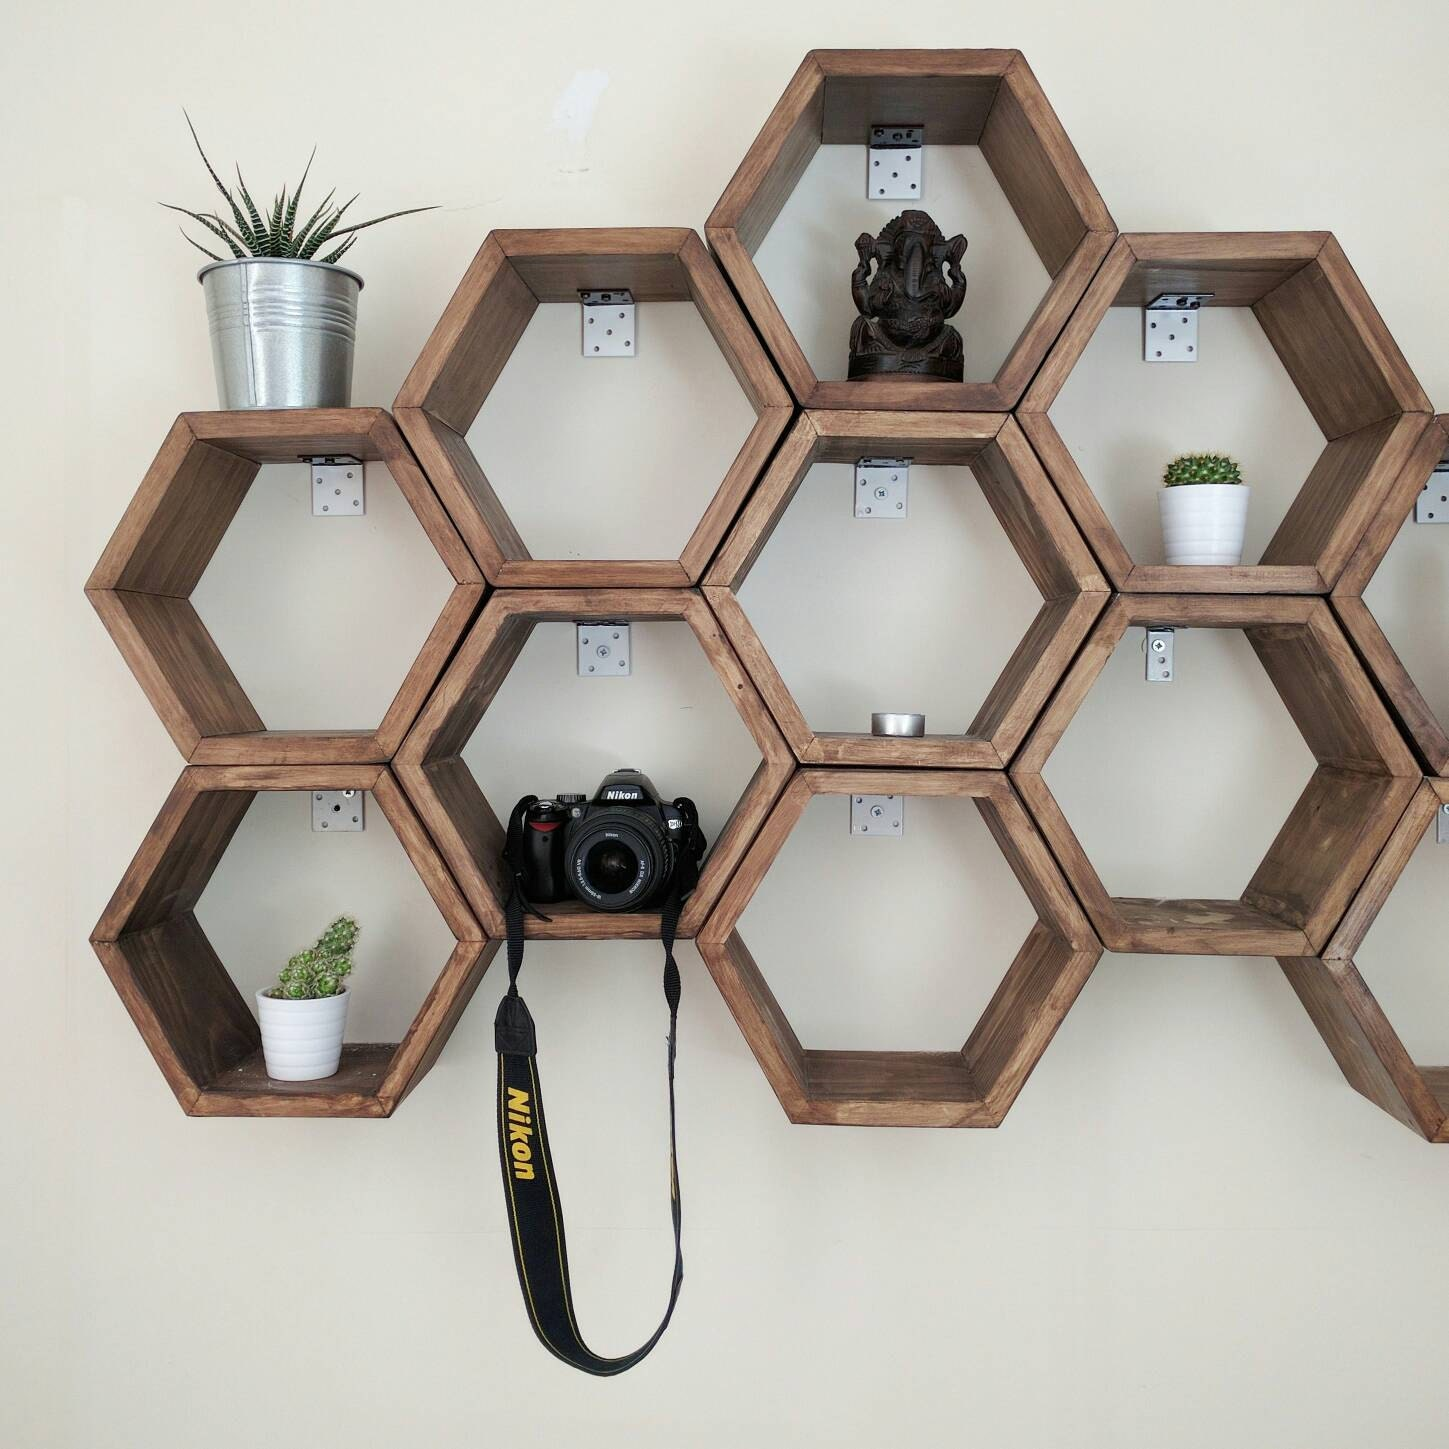 honeycomb hexagon shelves handmade in the uk pine wood. Black Bedroom Furniture Sets. Home Design Ideas